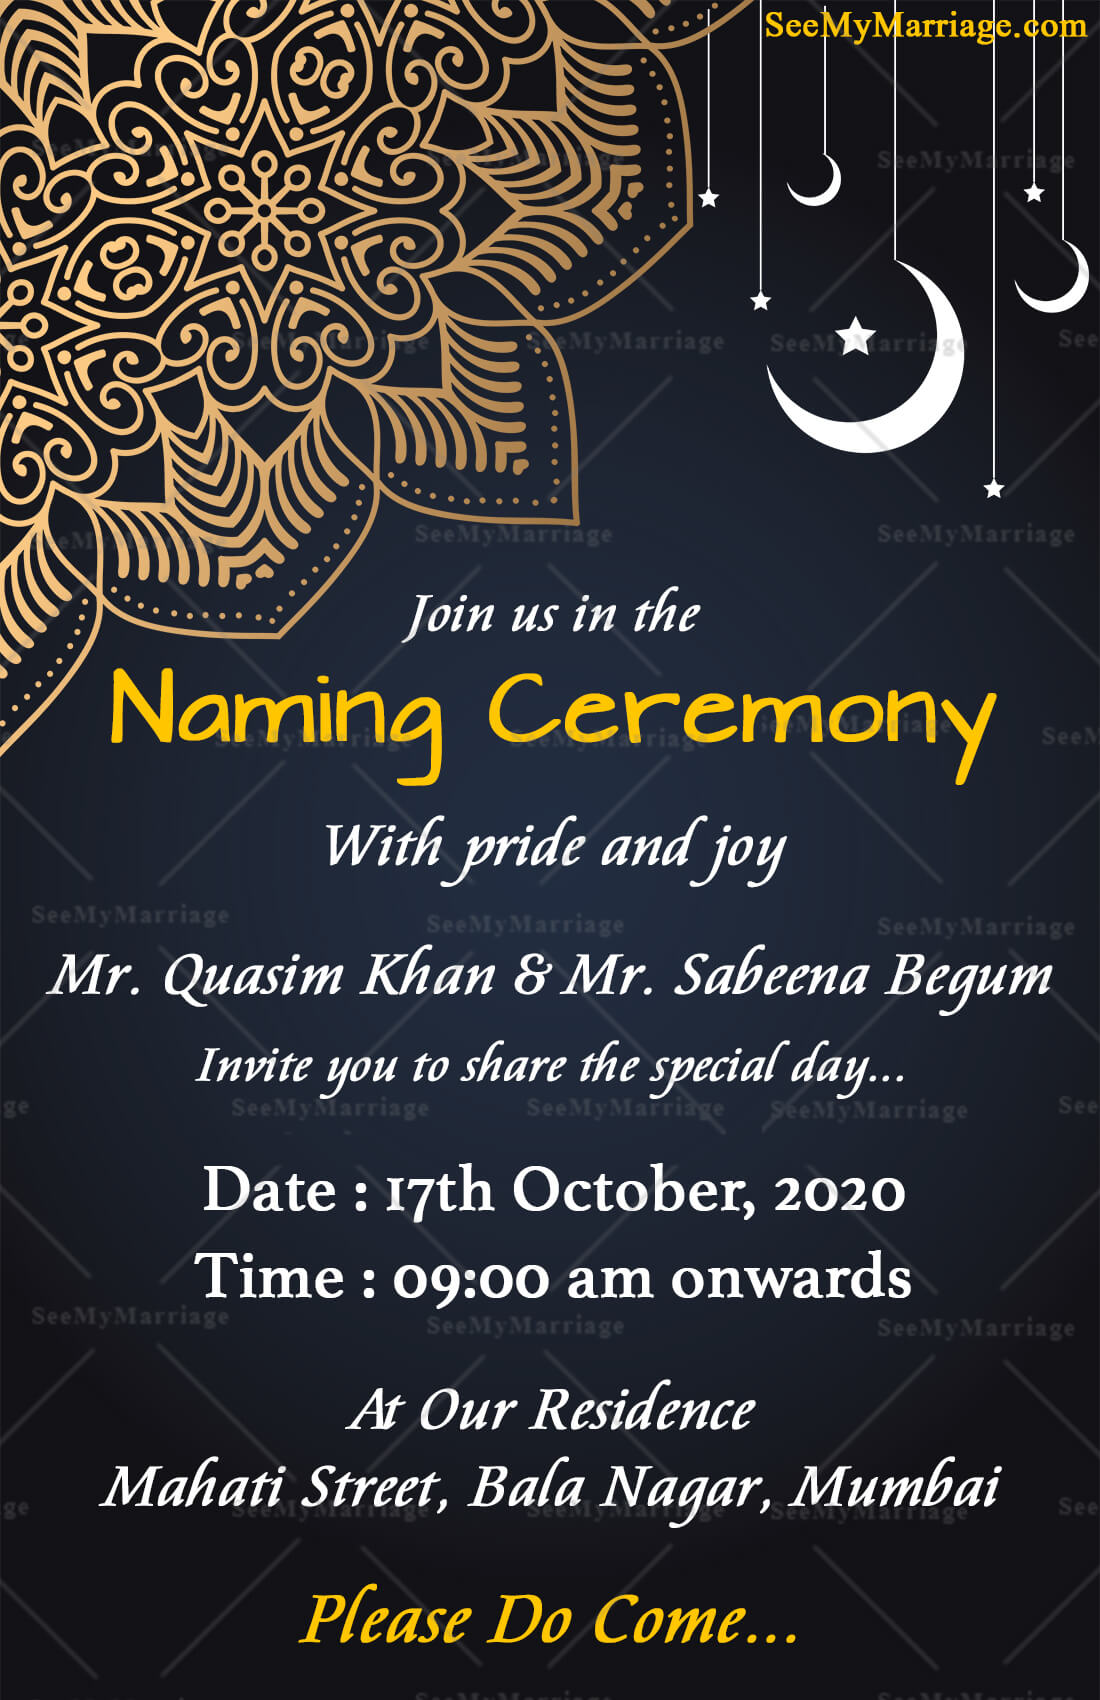 baby naming ceremony invitation card in dark navy blue background with traditional mandala design